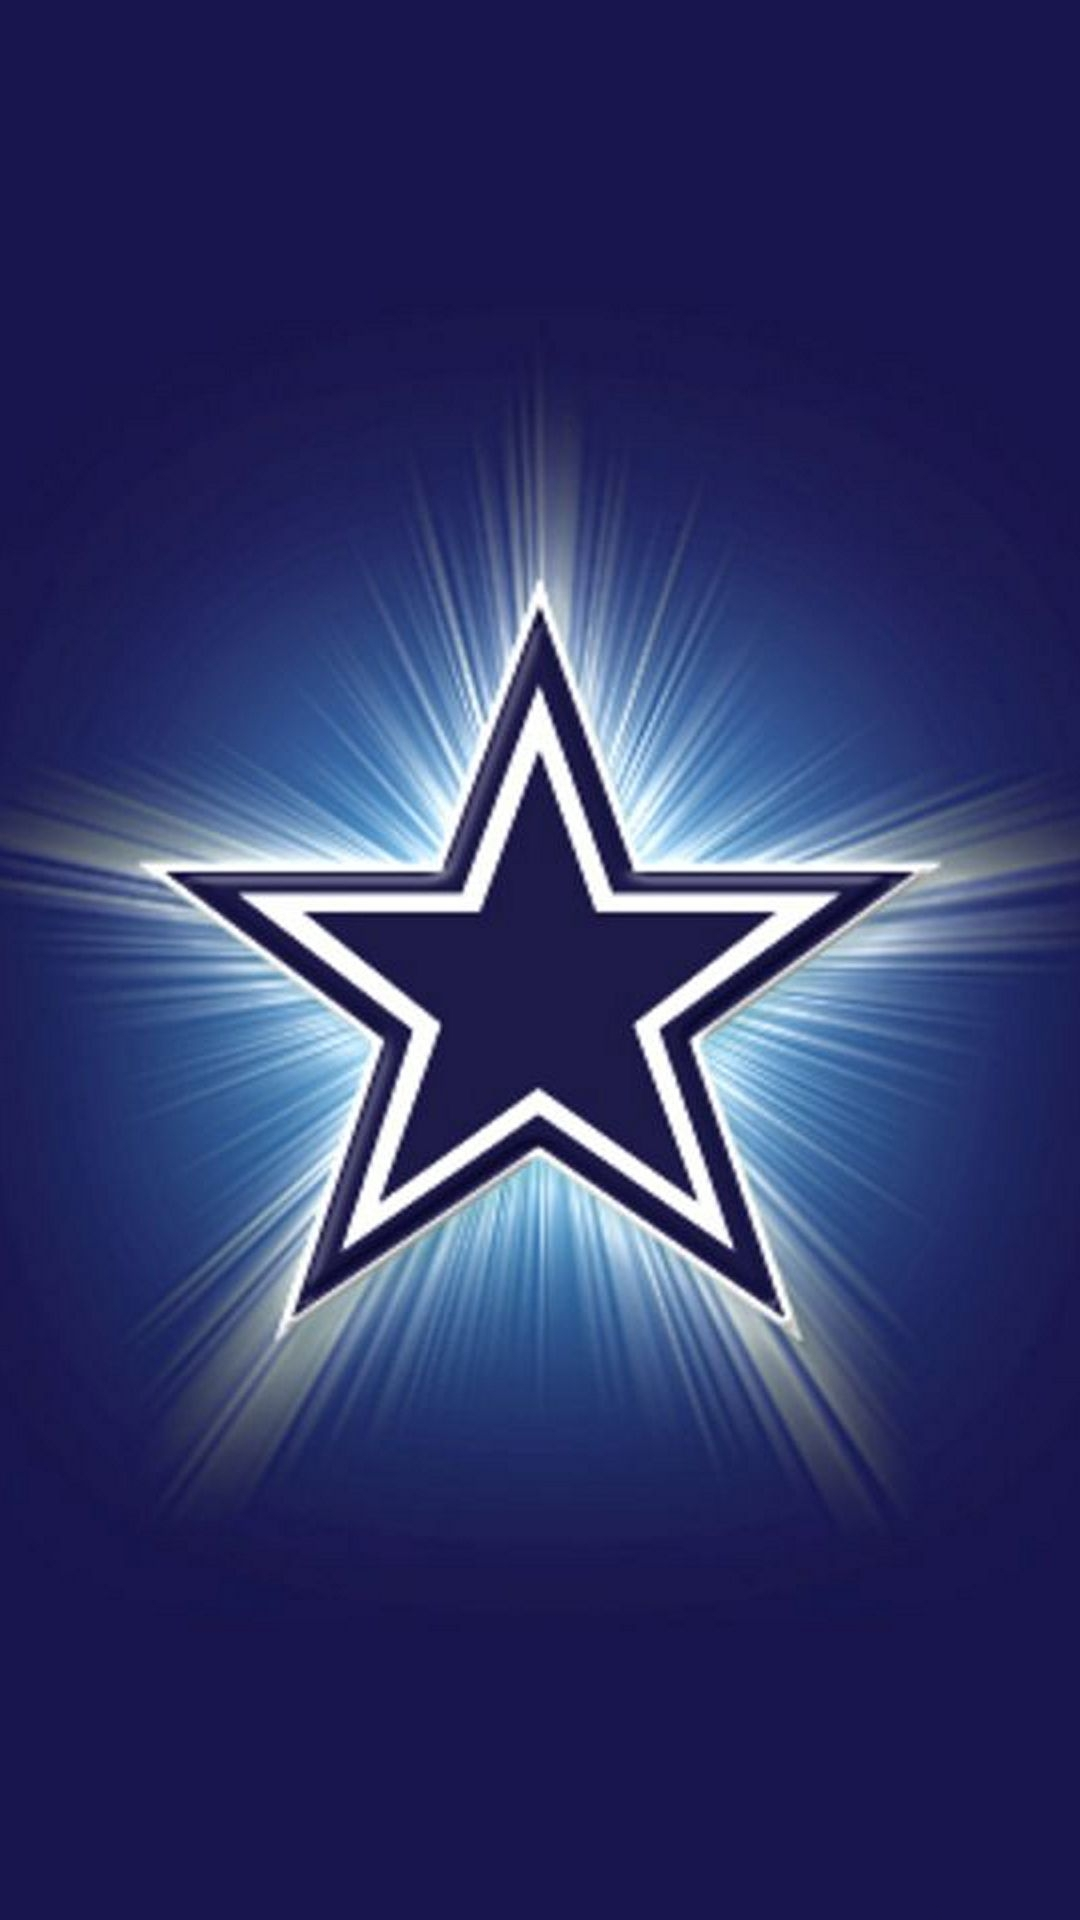 Free Download Dallas Cowboys Iphone Hd Wallpapers 1080x1920 For